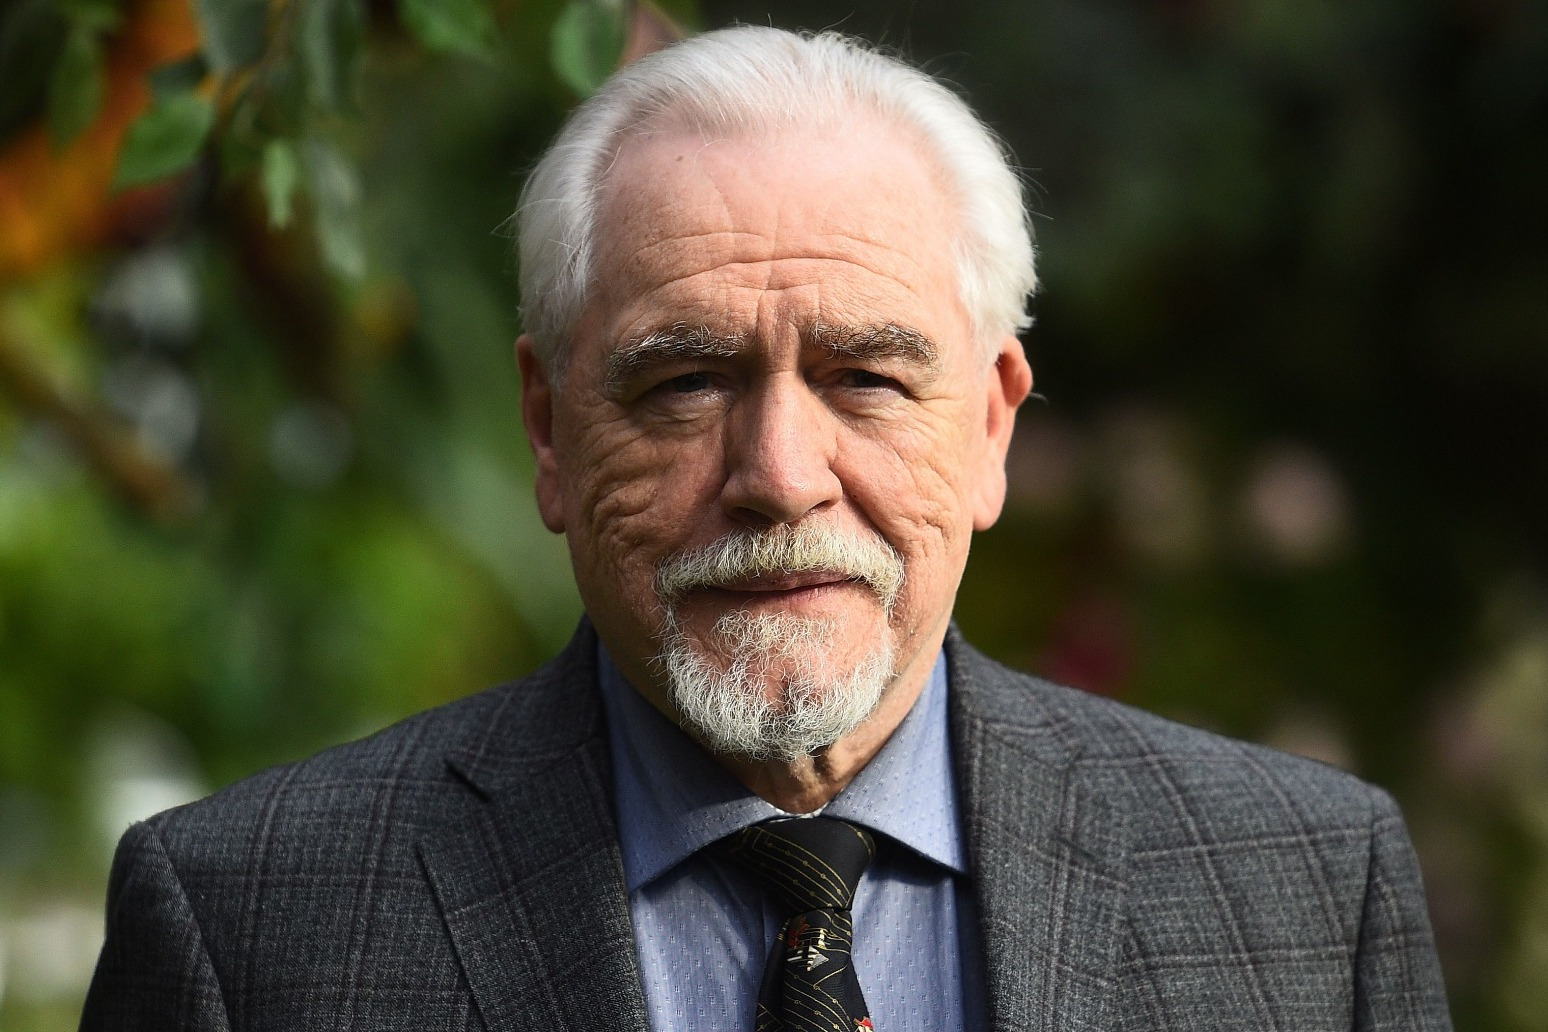 HOLLYWOOD ACTOR BRIAN COX CALLS FOR SECOND SCOTTISH INDEPENDENCE REFERENDUM